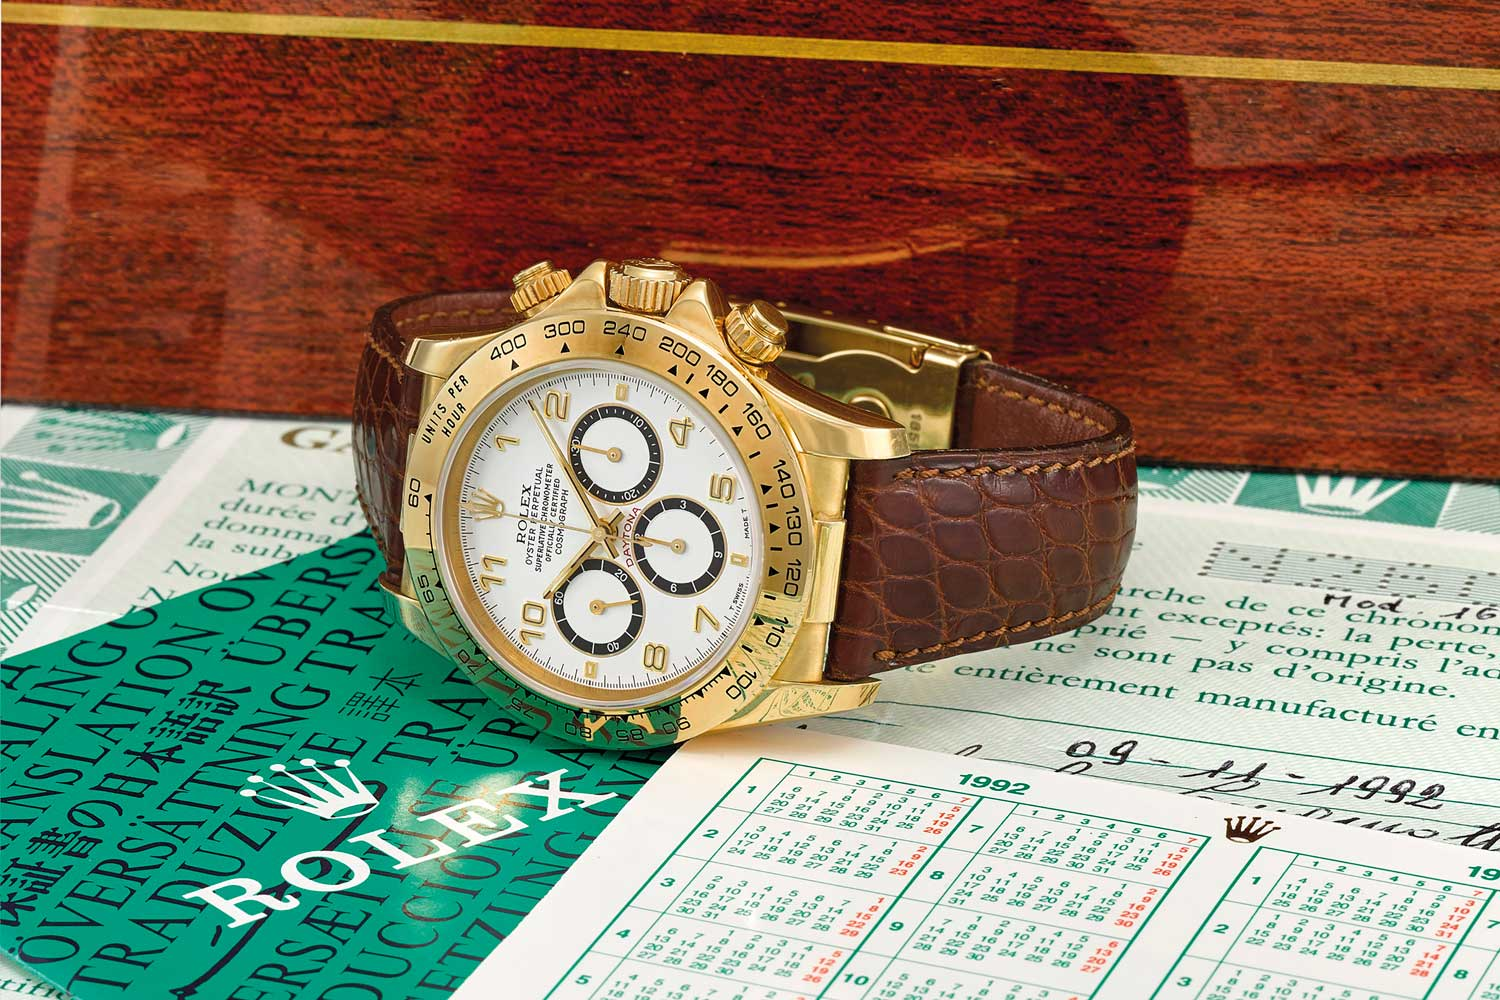 Lot 95: Rolex, a fine 18k gold automatic chronograph wristwatch with original guarantee and box